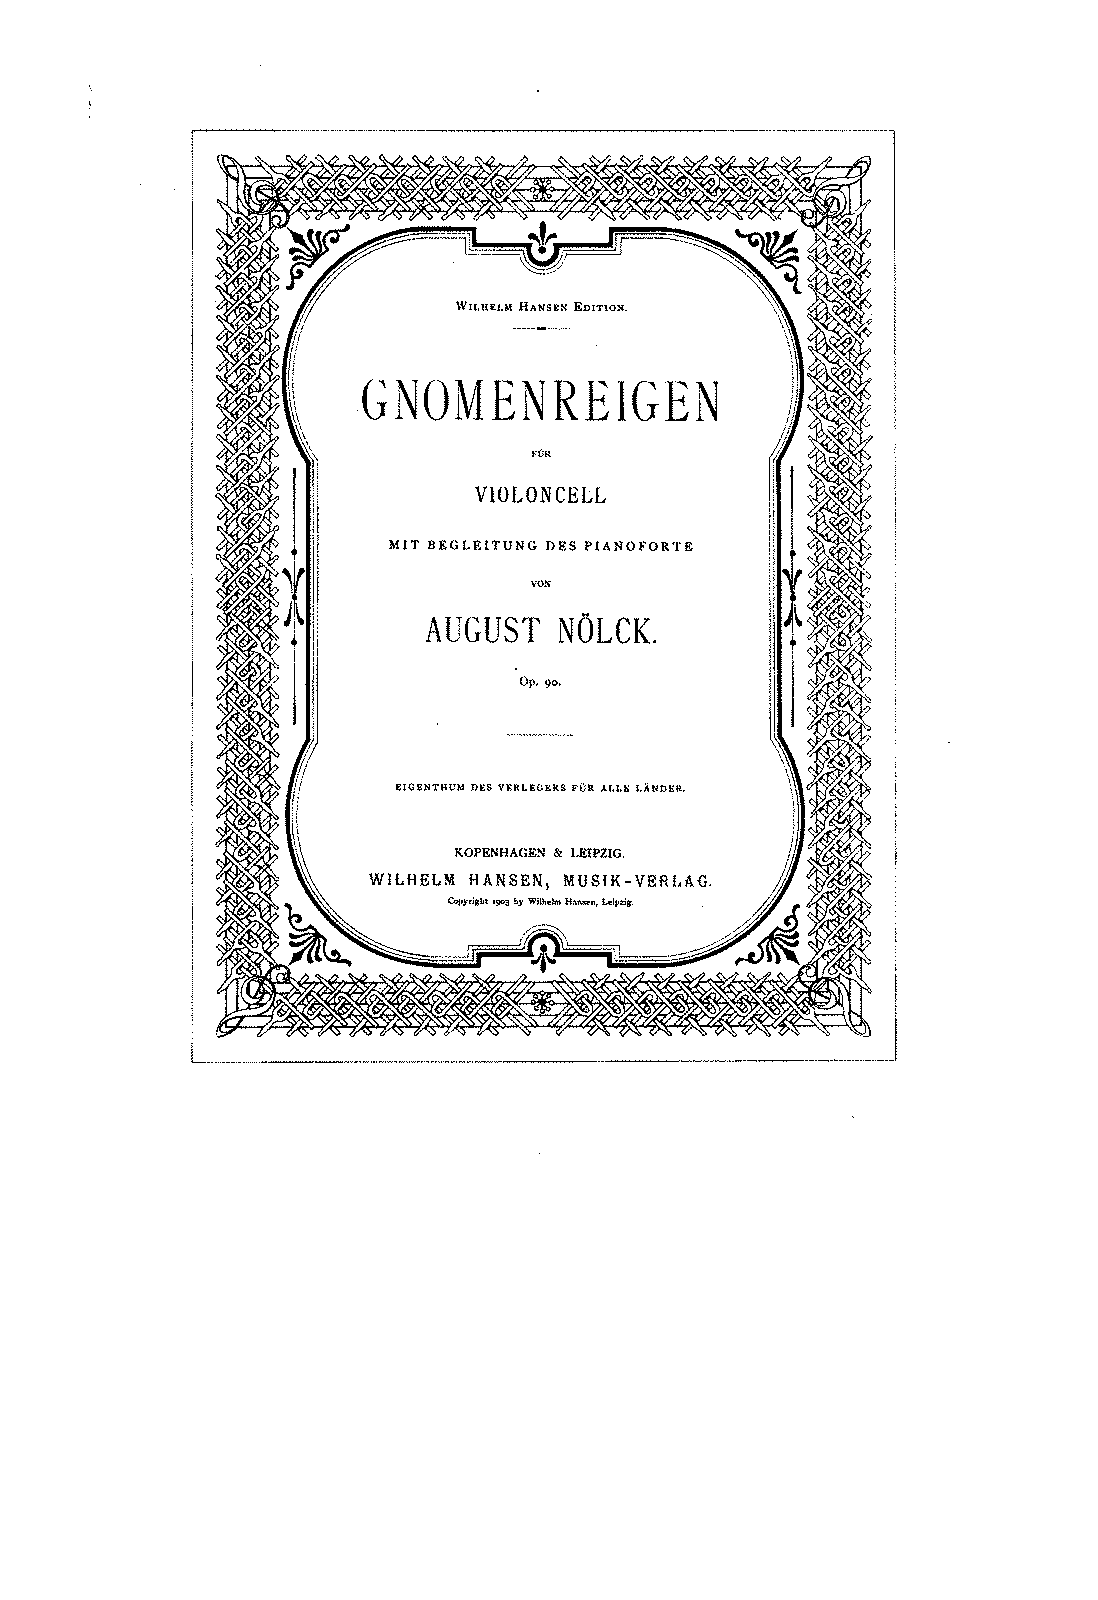 PMLP130480-Nolck - Gnomenreigen for Cello and Piano Op90 score.pdf